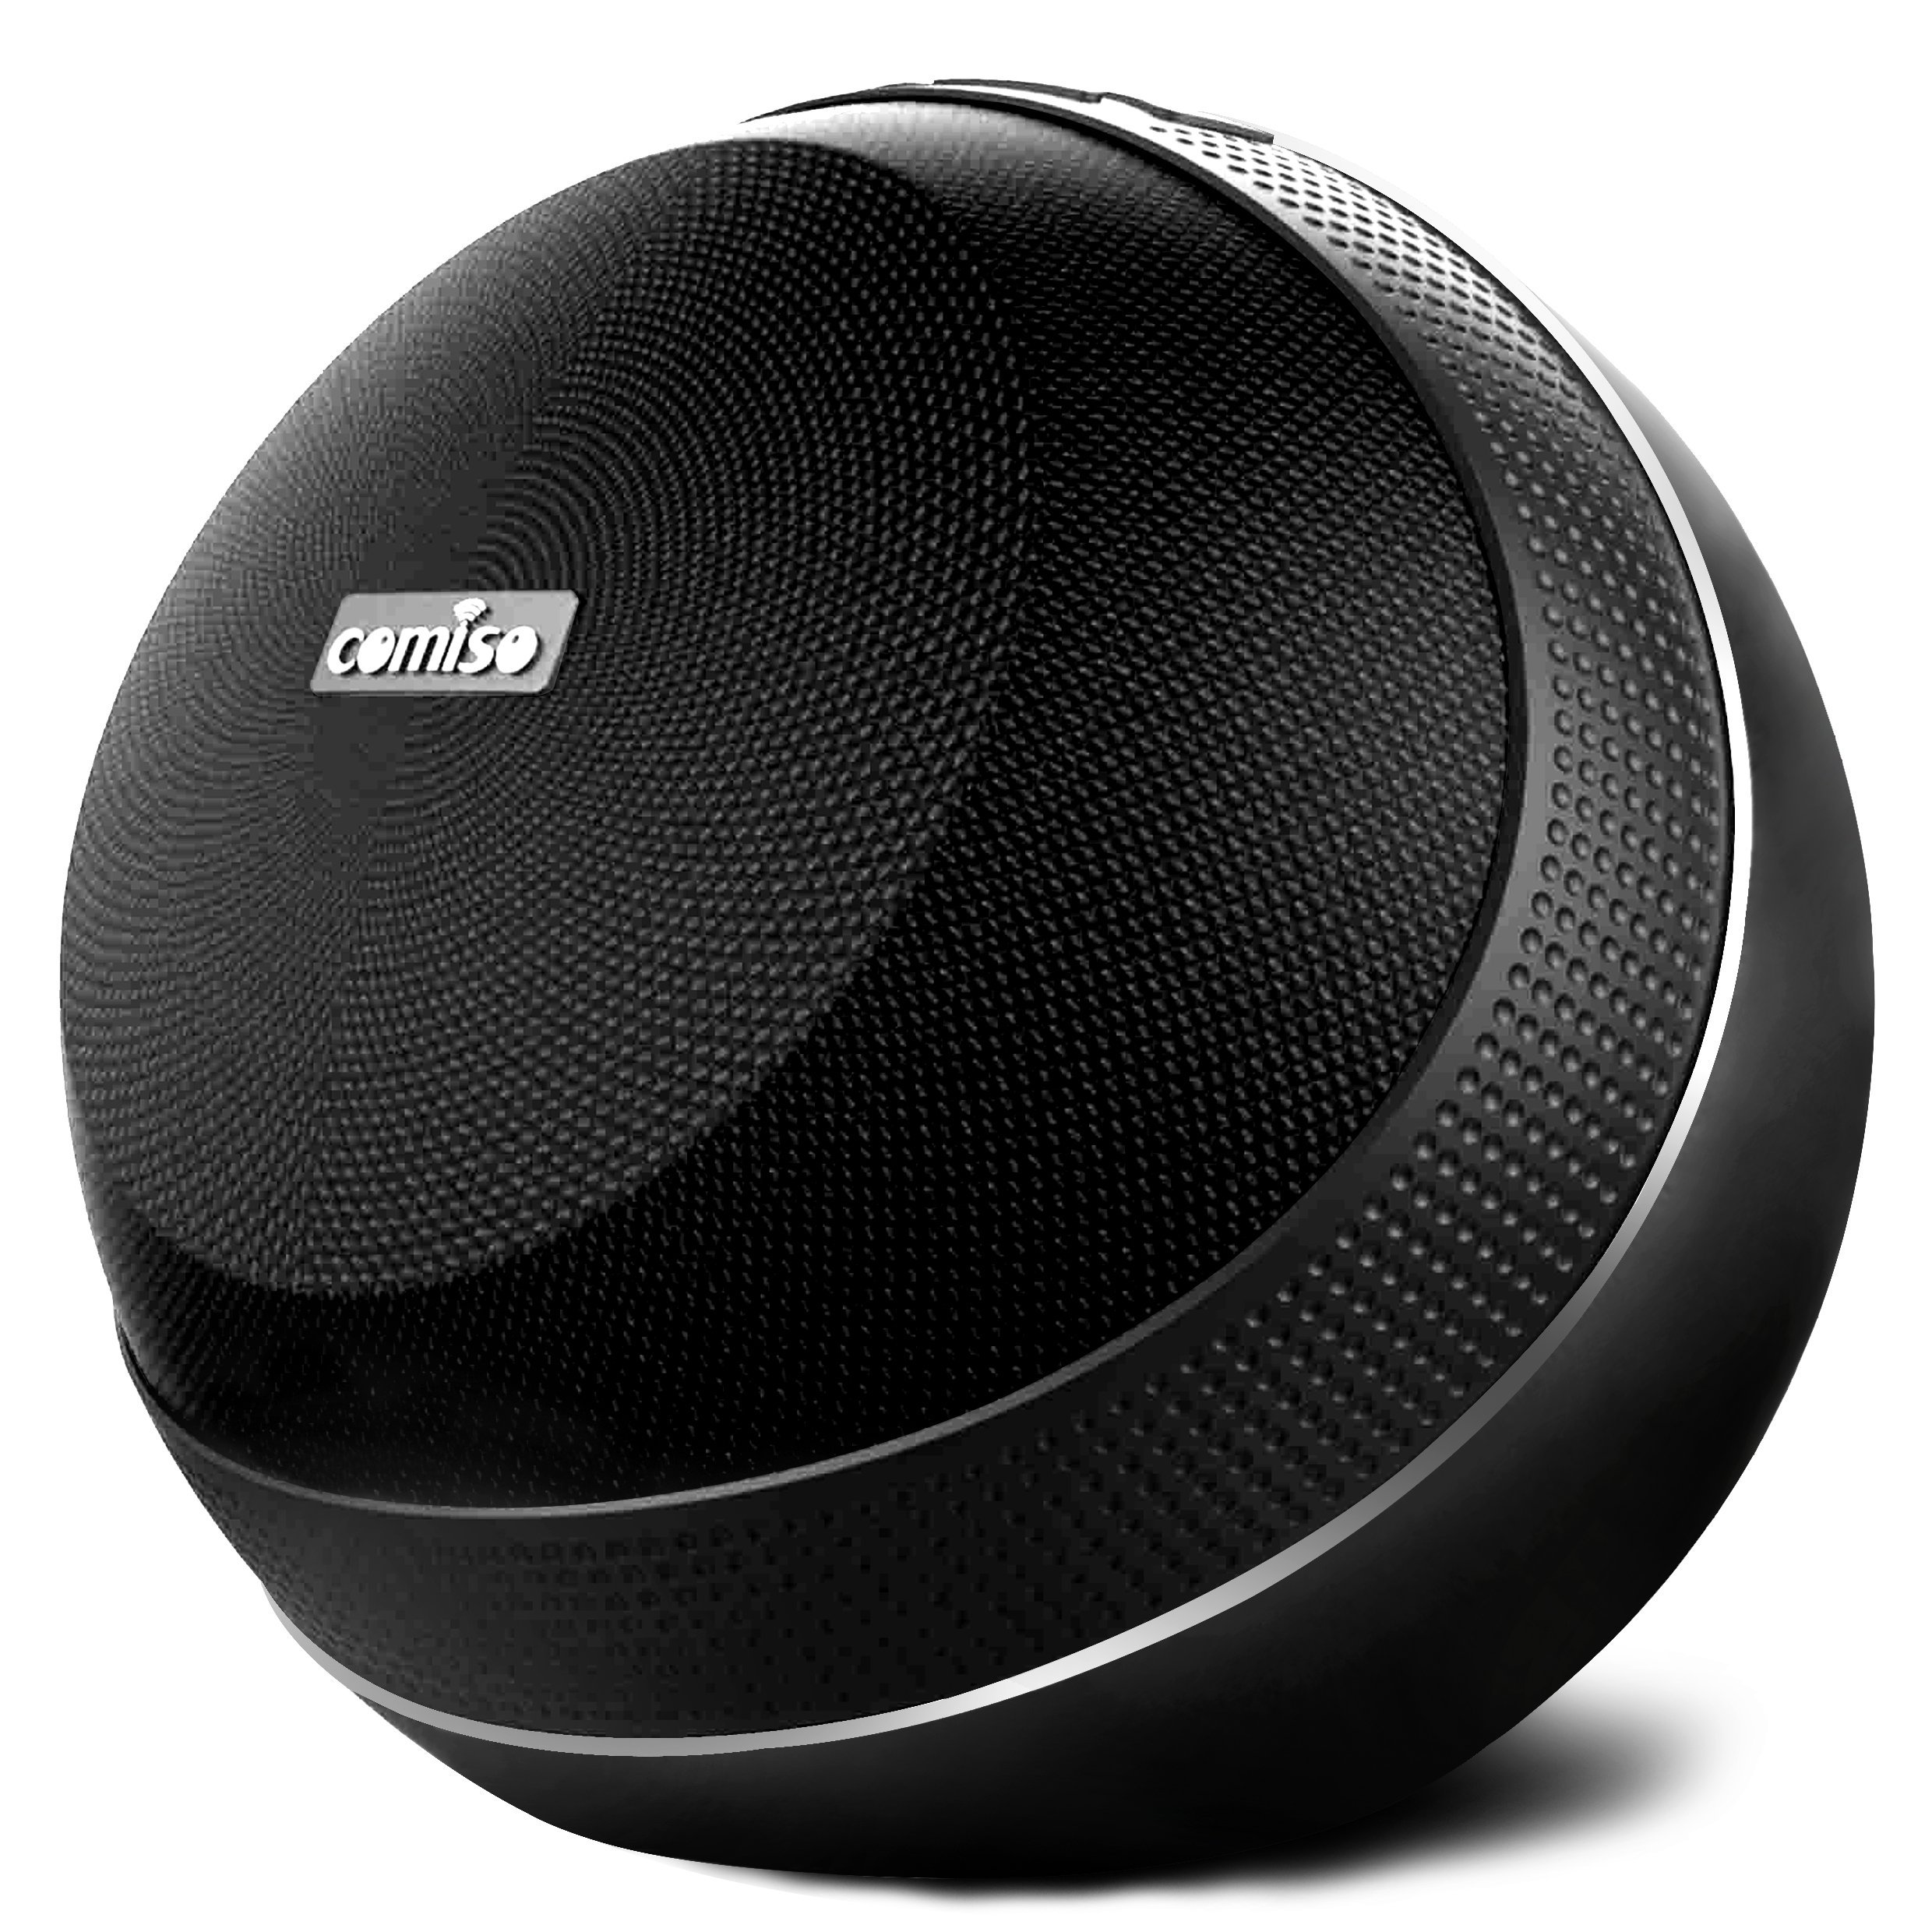 COMISO HomeAudio 30W Bluetooth Speakers, Loud Dual Driver Hi-Fi Wireless Bluetooth Speaker with HD Audio and Enhanced Bass, Wireless Stereo, Built in Mic, Aux Input, Long-Lasting Battery Life (Black)